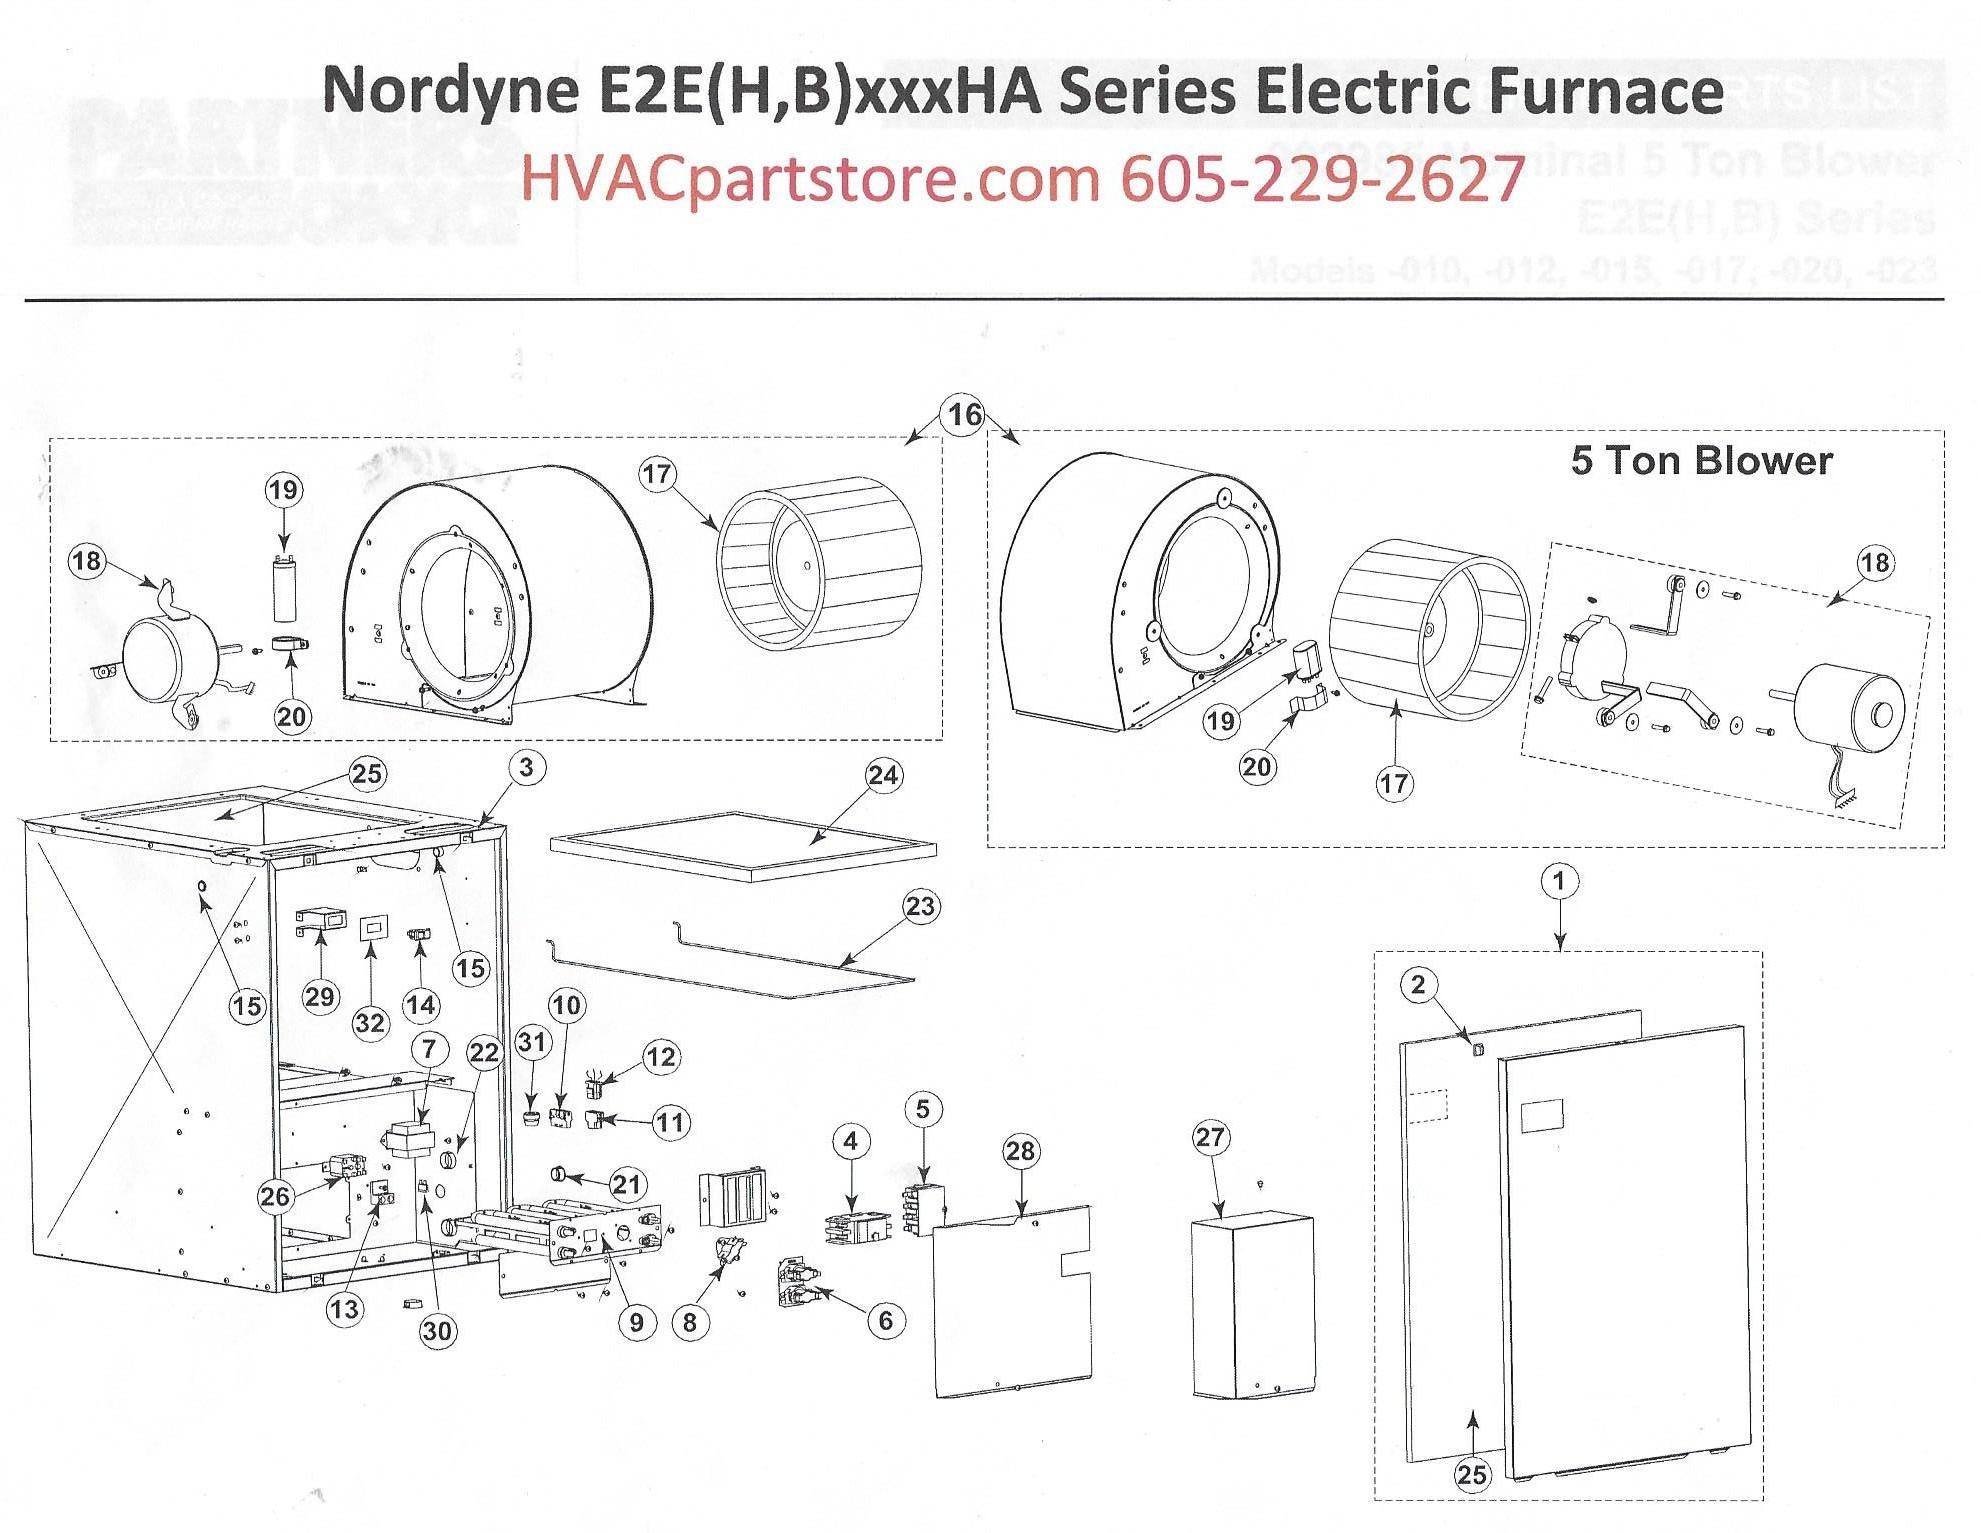 E2HADiagram_f0f076ea fd94 4d7b 8e49 0d9e07172c60 intertherm electric furnace wiring diagram manual dolgular com intertherm electric furnace wiring diagrams at edmiracle.co